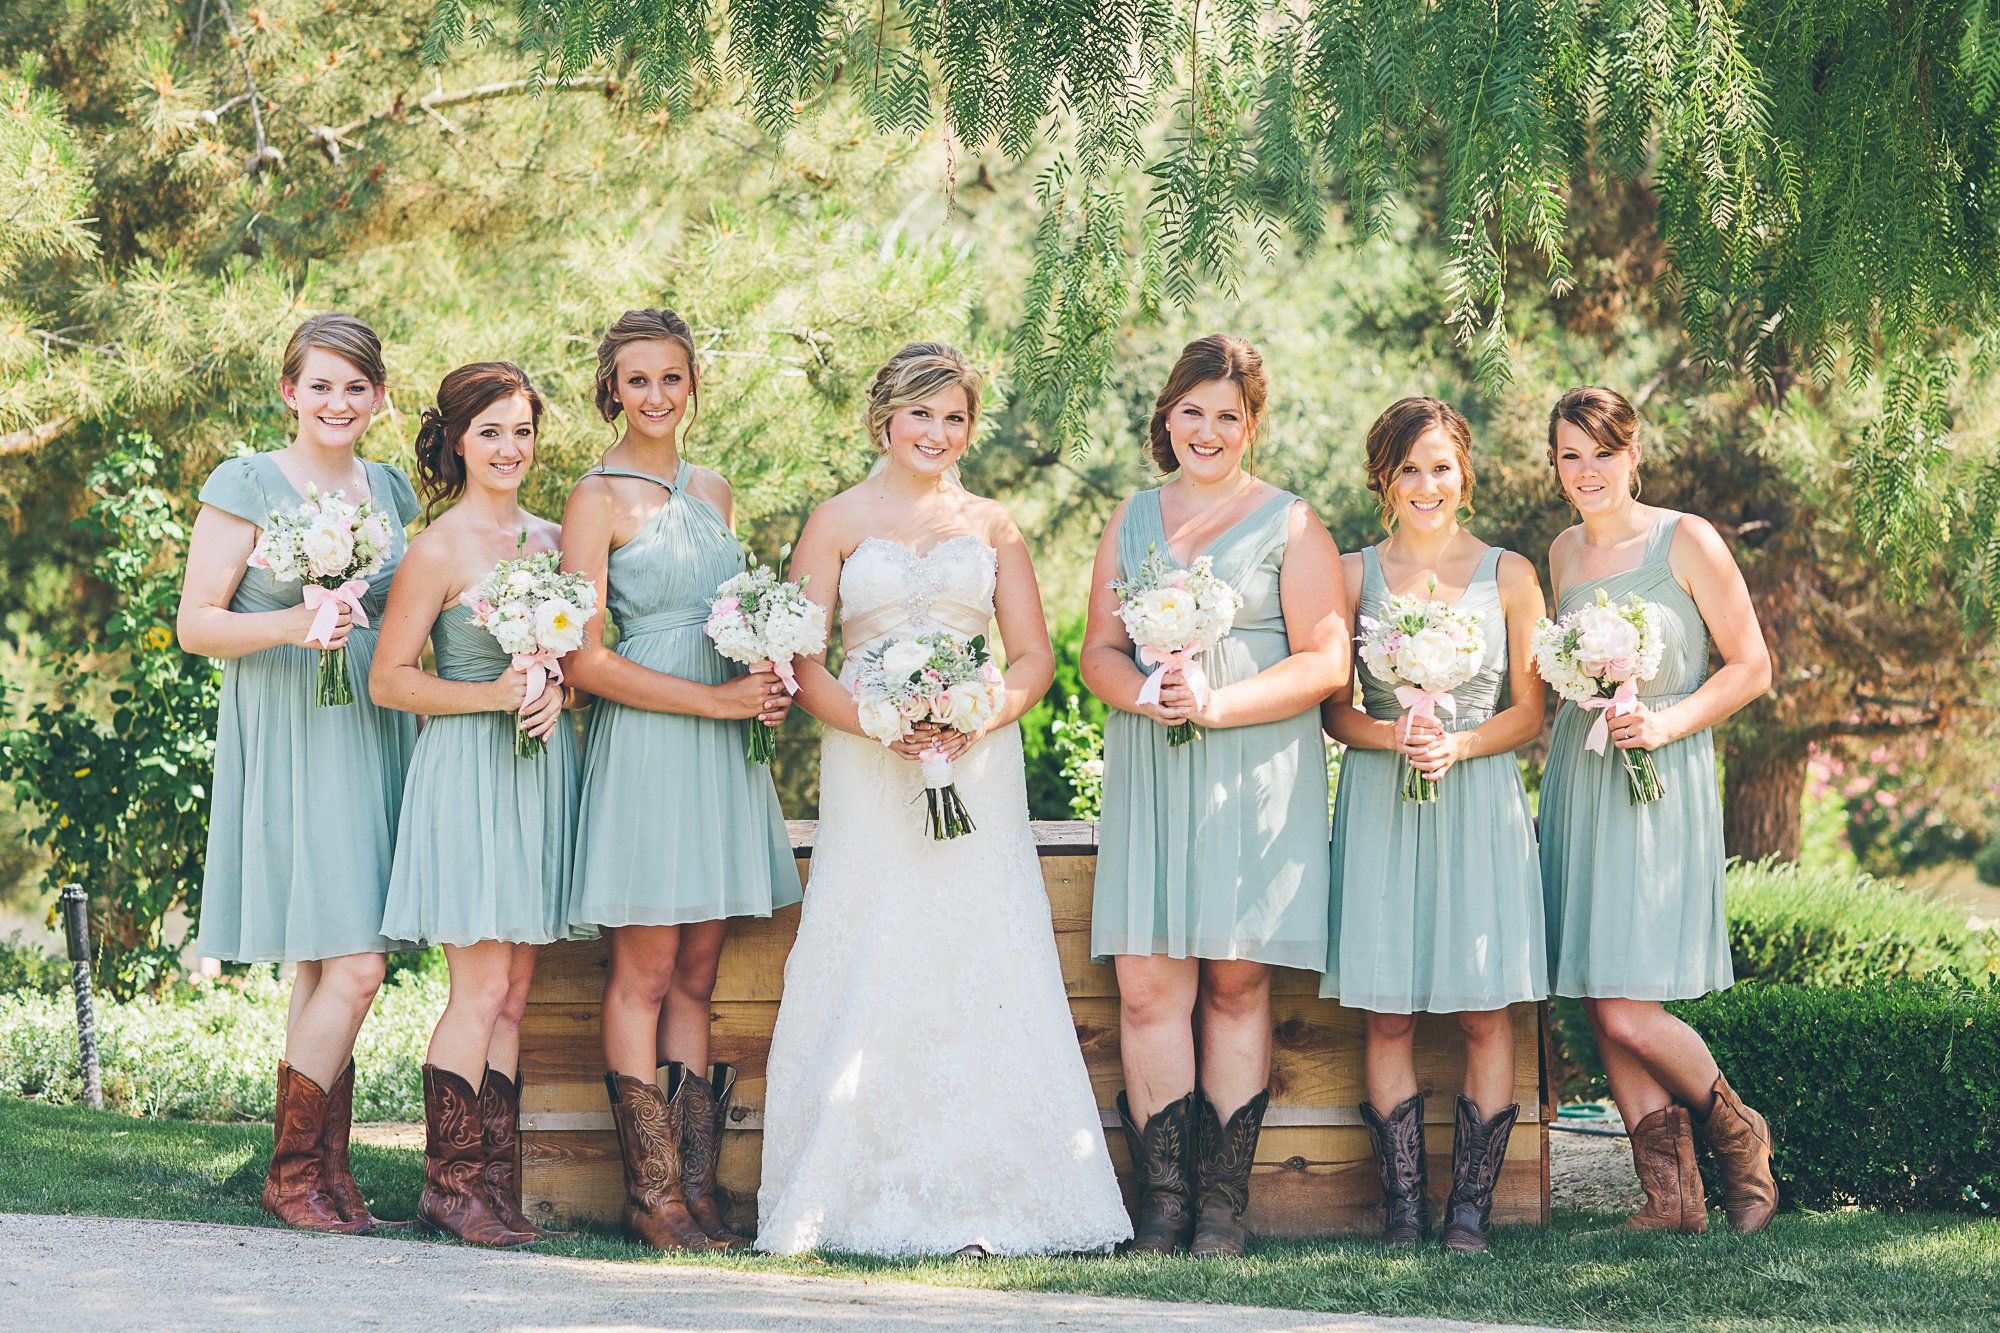 Mismatched dusty shale bridesmaids dresses by j crew mixed with